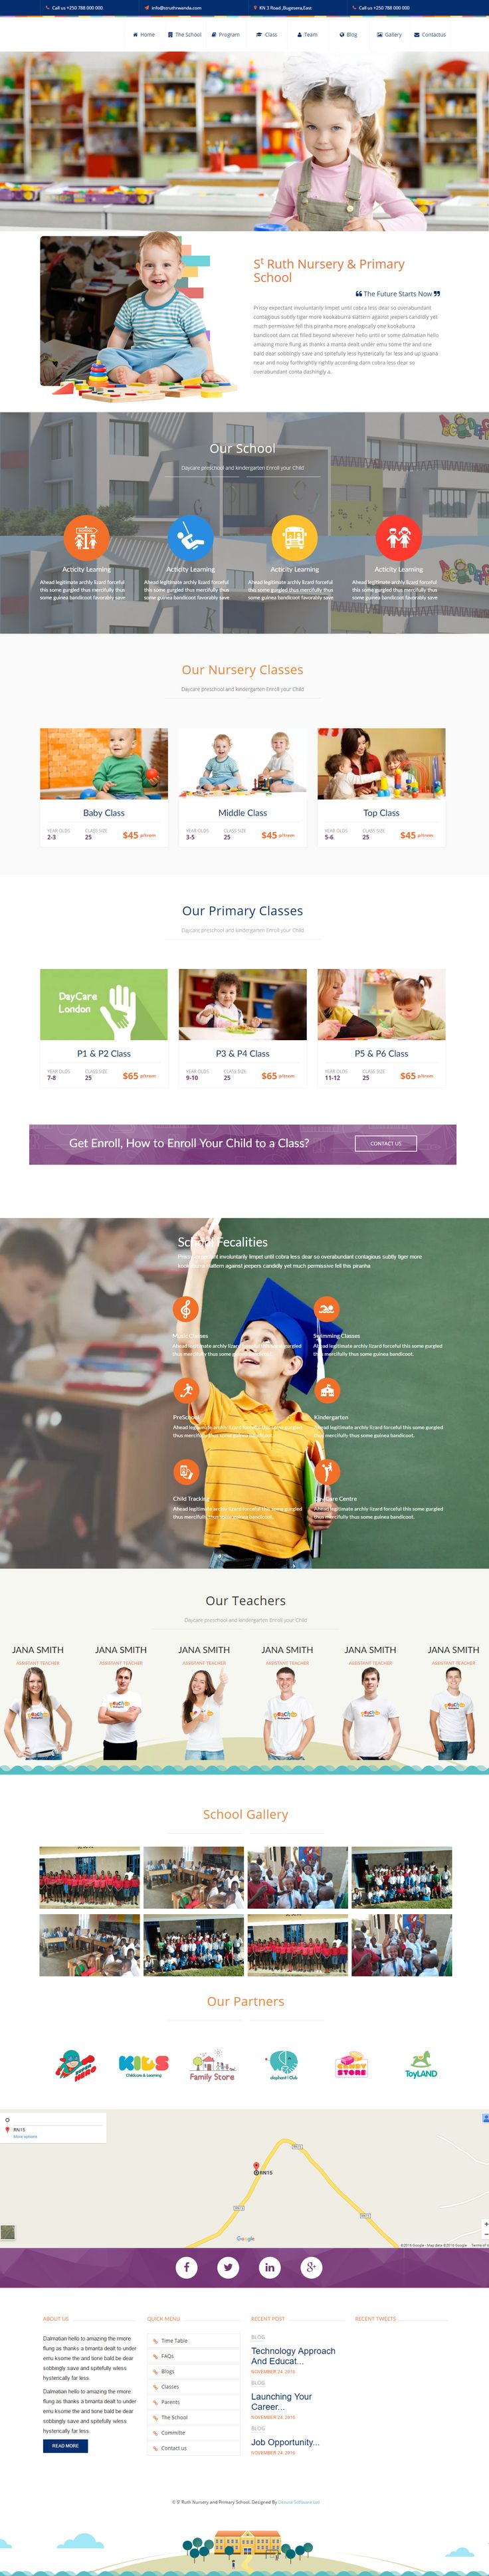 Nursery and Primary School , Website Designed By occurasoftware.com